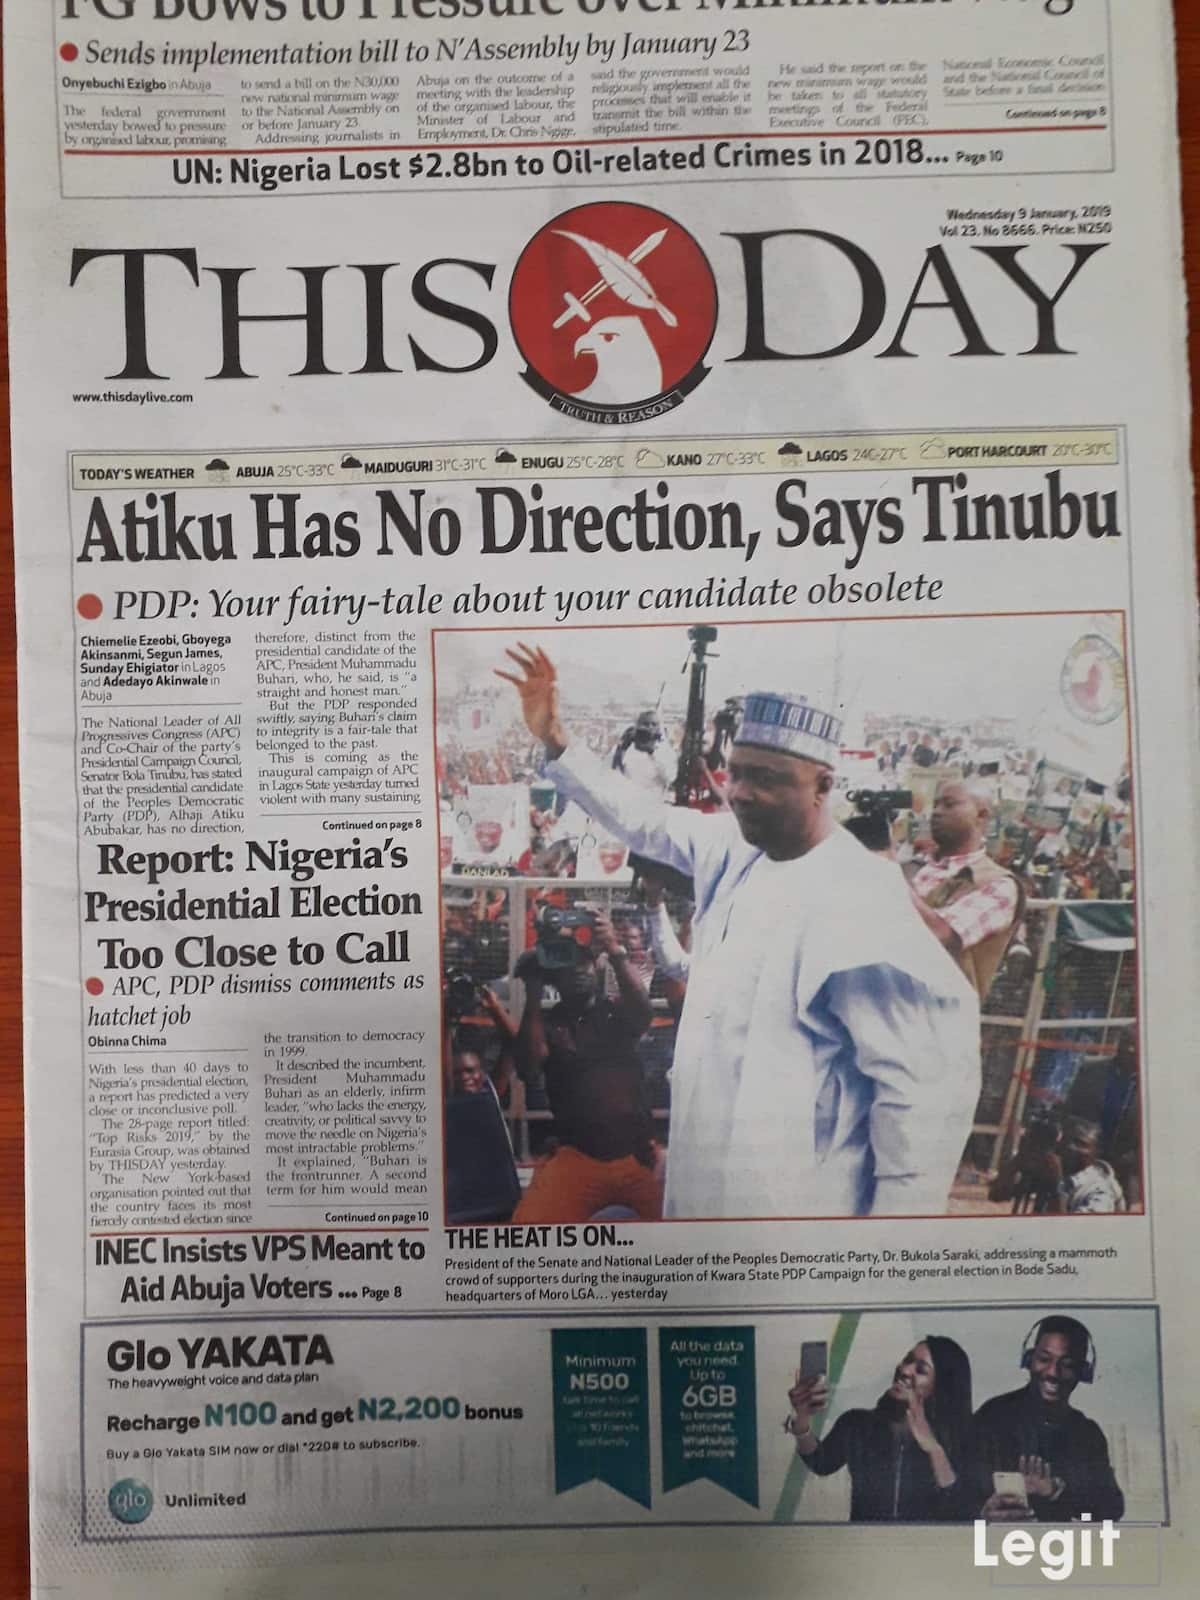 This Day newspaper for Wednesday, January 9. Credit: Legit.ng